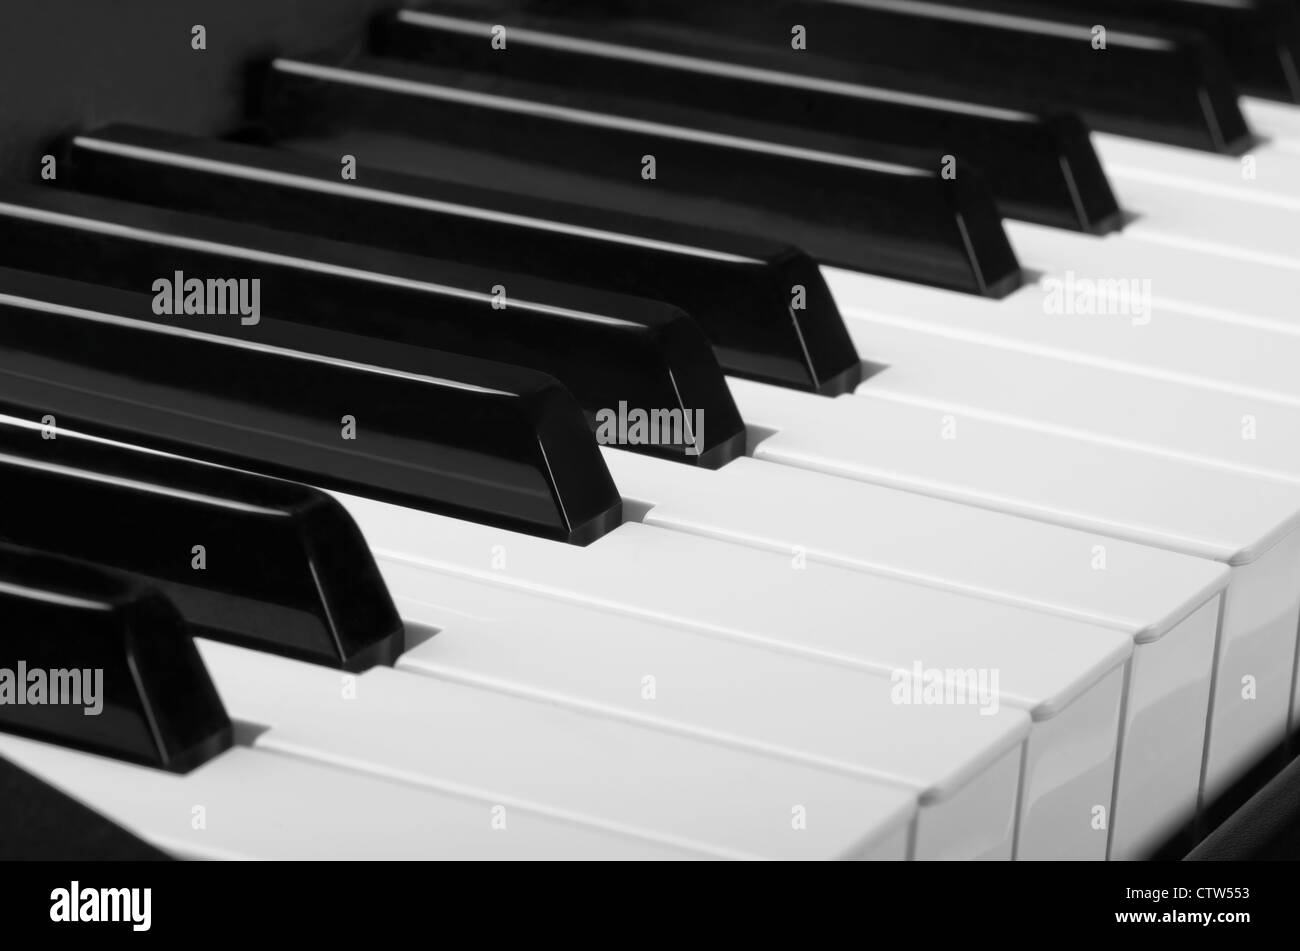 digital piano stockfotos digital piano bilder alamy. Black Bedroom Furniture Sets. Home Design Ideas